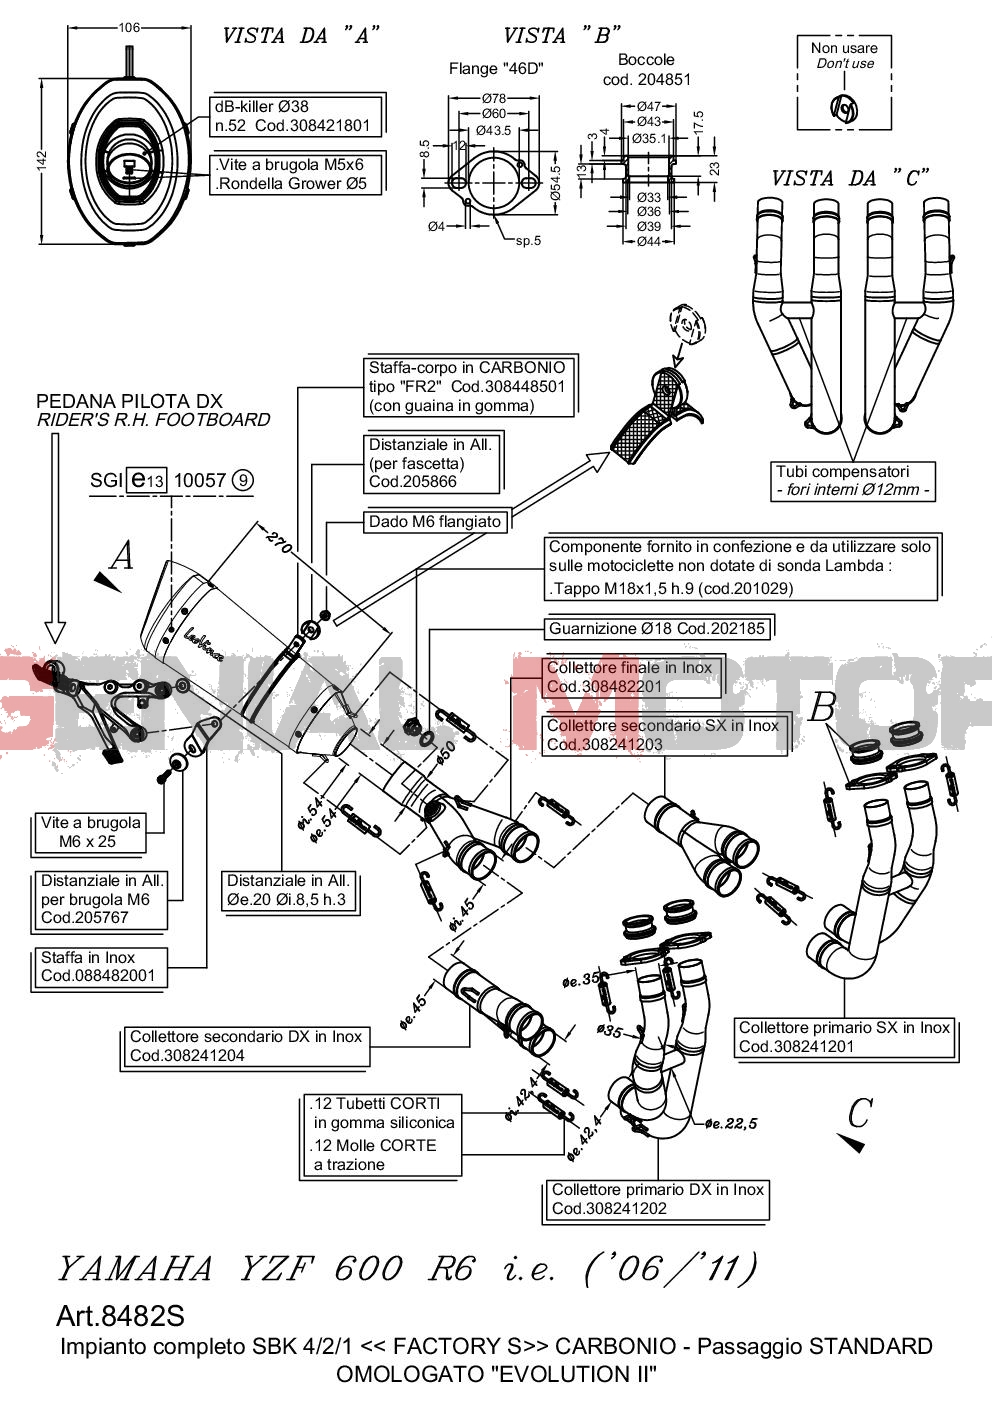 Complete Exhaust System Leovince Factory S Carbon Yamaha Yzf R6 2006 > 2016